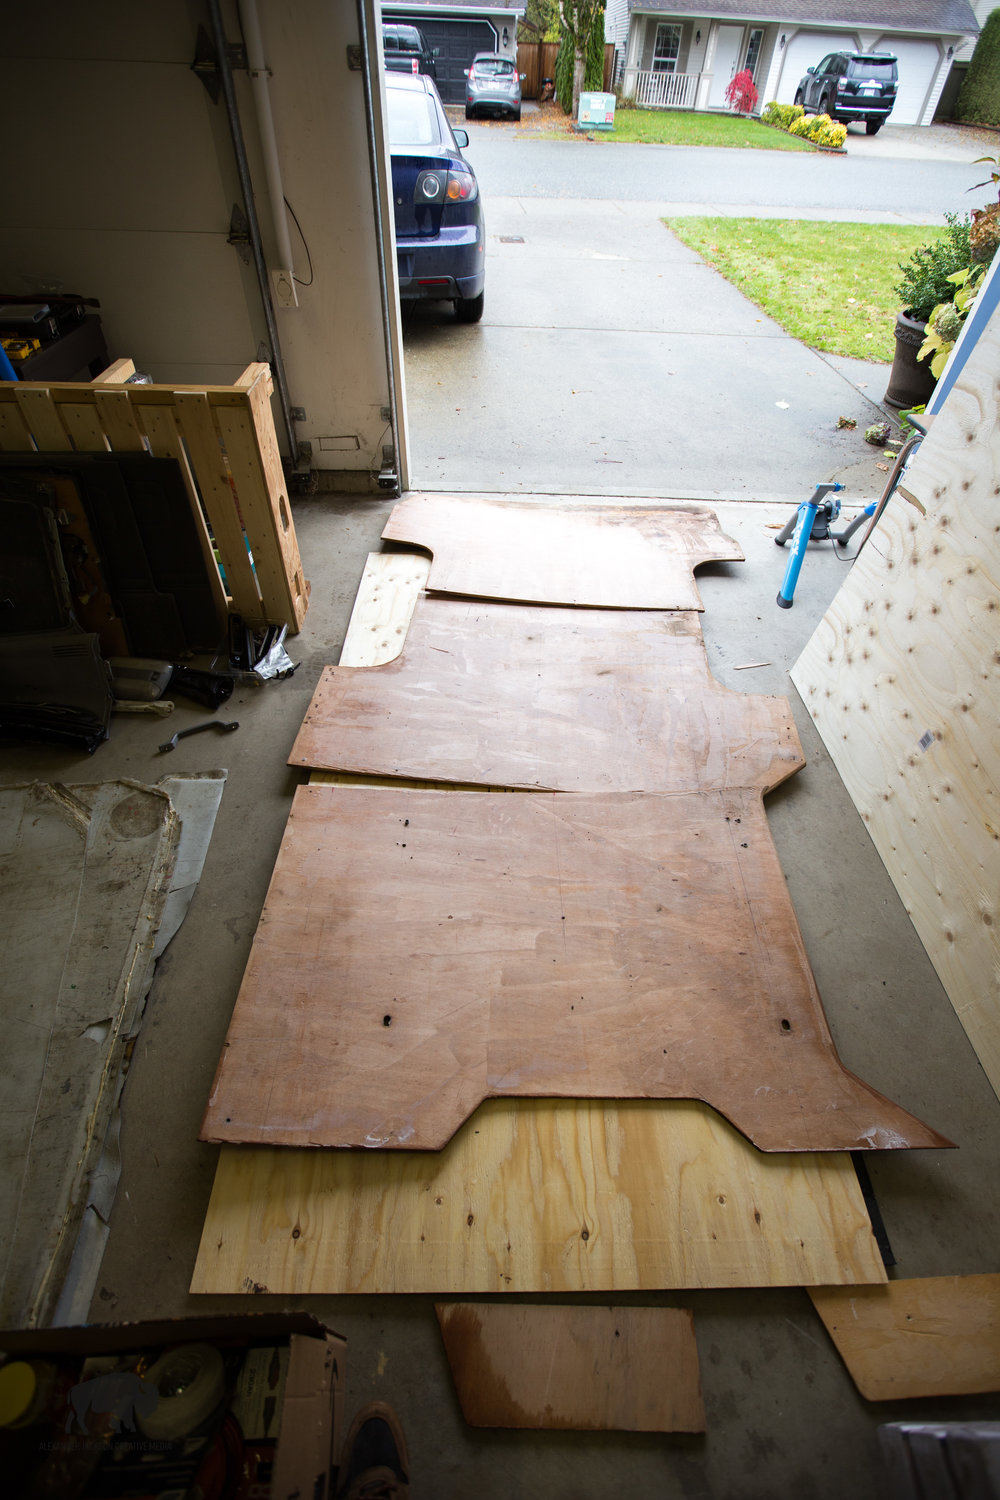 Next on the list was putting in a new sub floor.  Luckily the van provided a subfloor template which I simply traced, this cut down on a lot of extra measuring and expedited the process of putting in the floor.